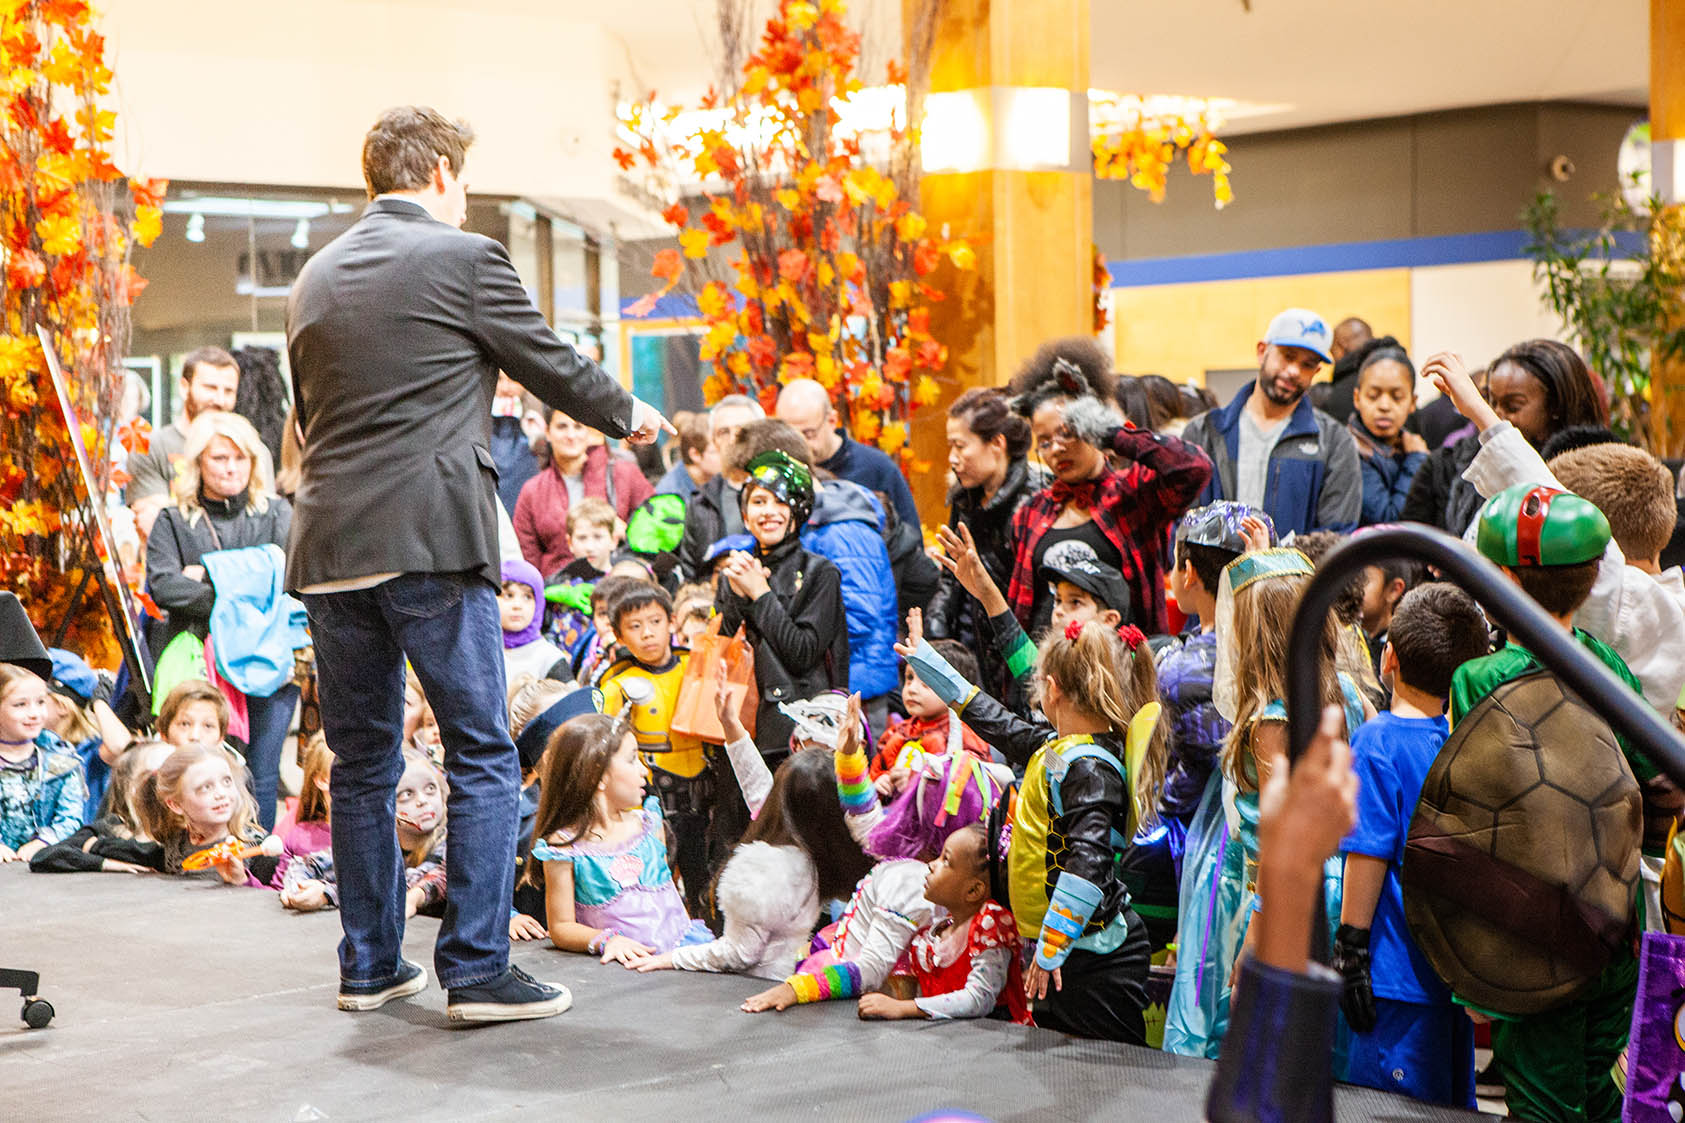 Monster Mash attendees watch Jasen Magic at Orchard Mall on Oct. 26, 2018.